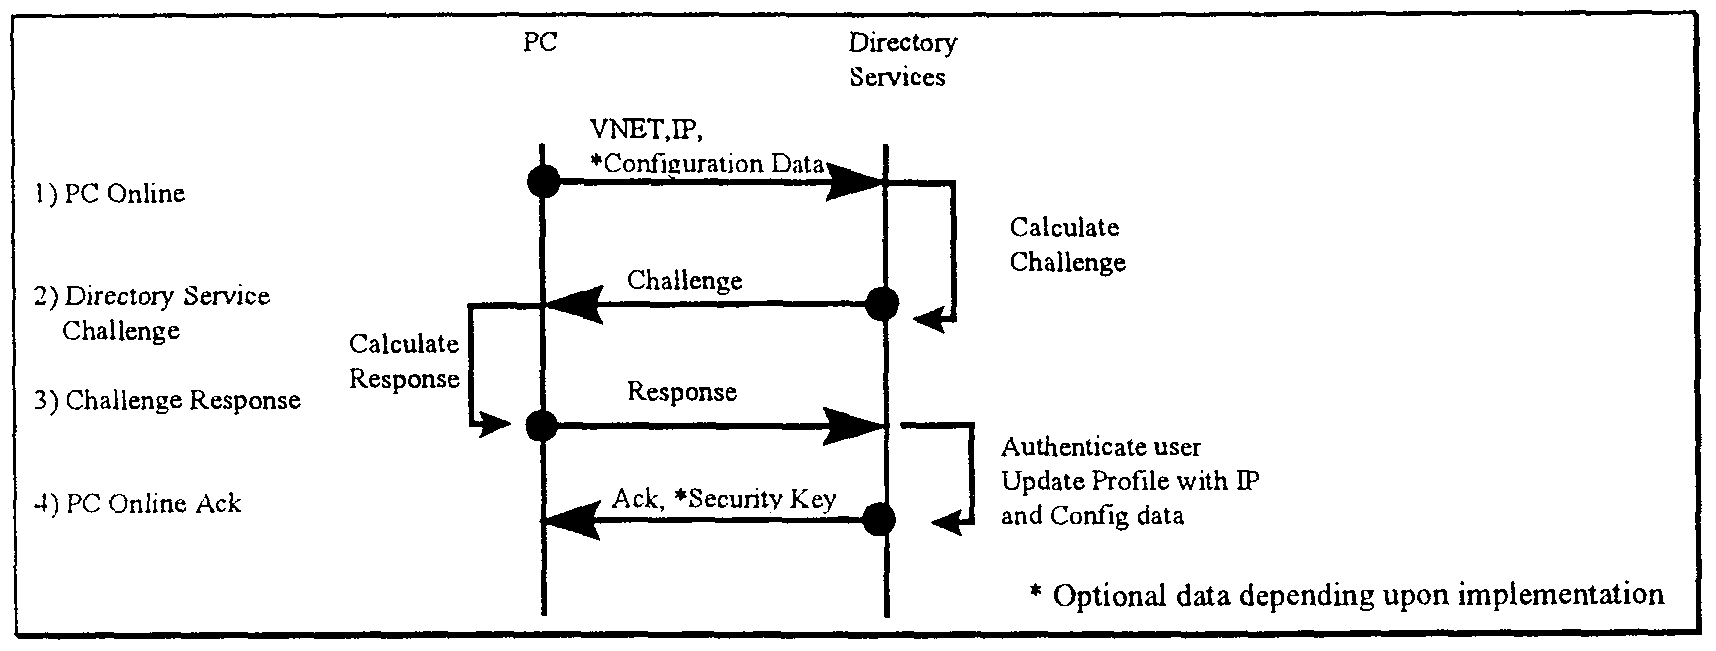 WO1998034391A9 - A communication system architecture